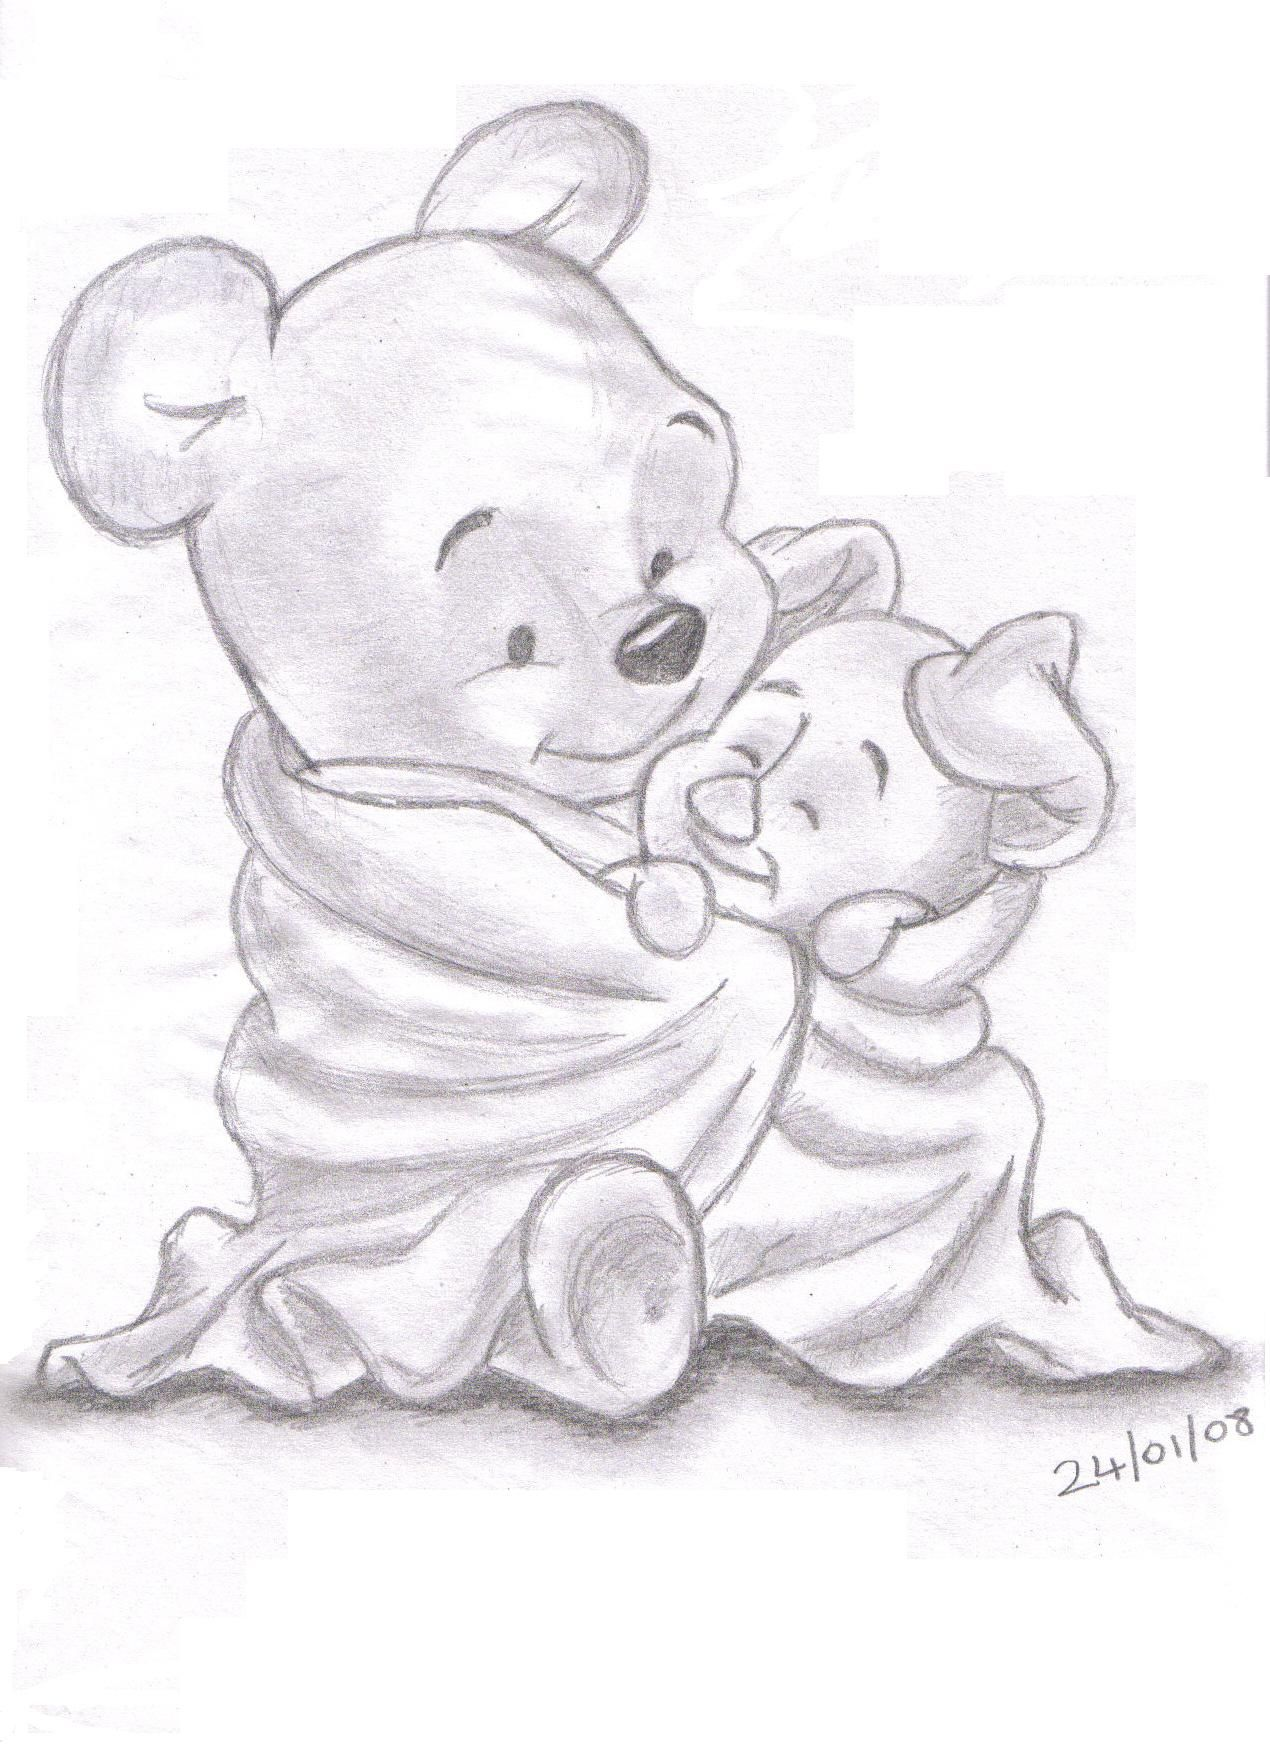 Cartoon Pencil Art Image Pencil Sketch